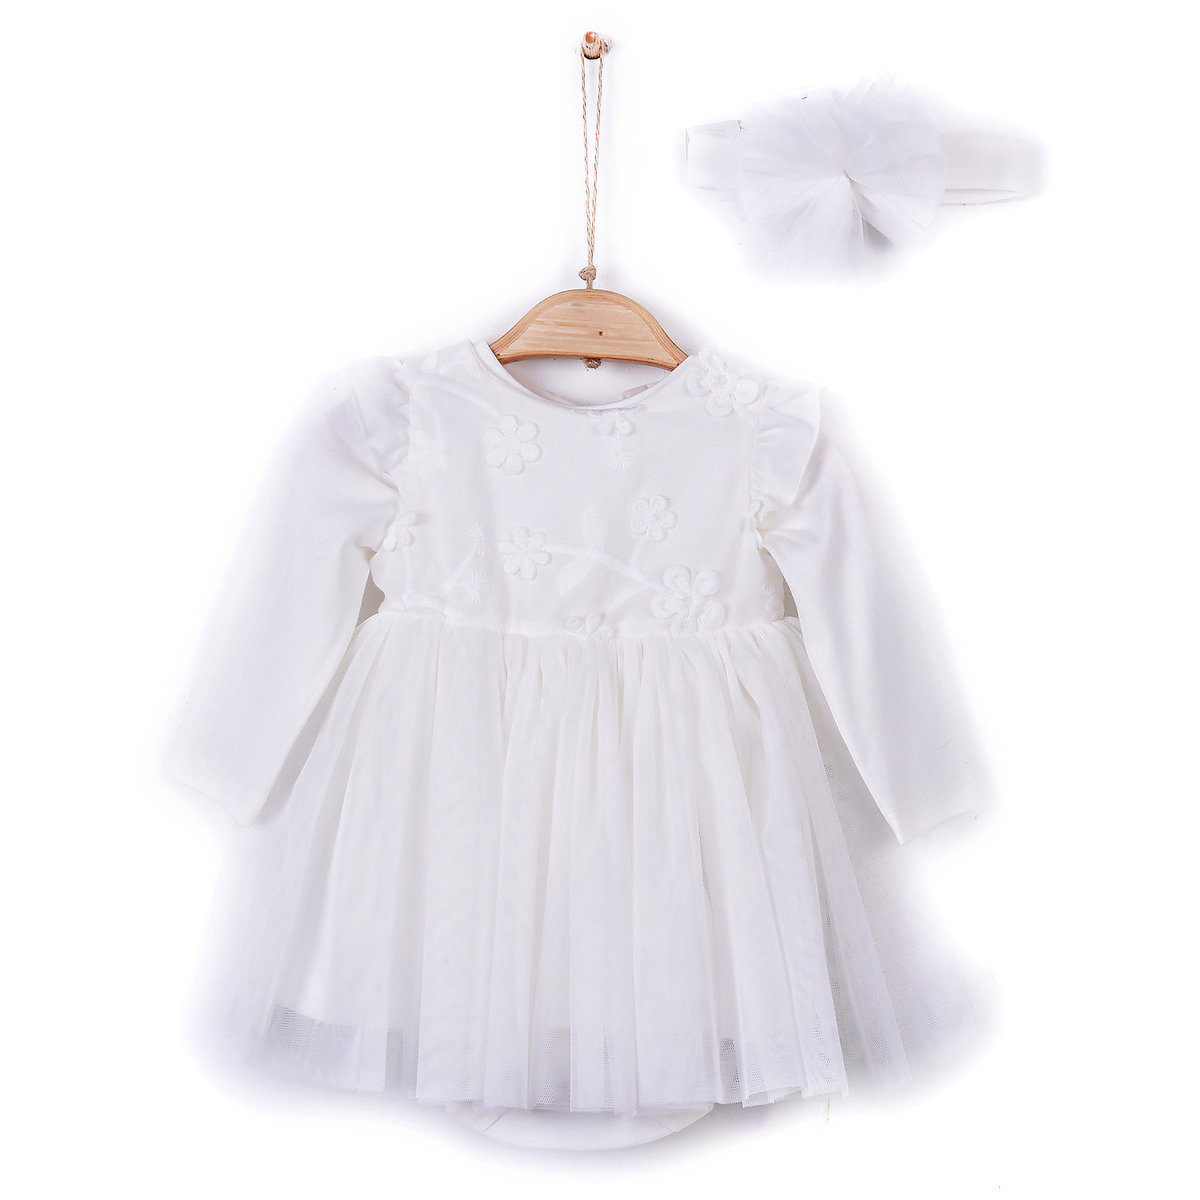 Organic Cotton Baby Girl Hundred Day Dress / Princess Dress (1-3M) (1pc)